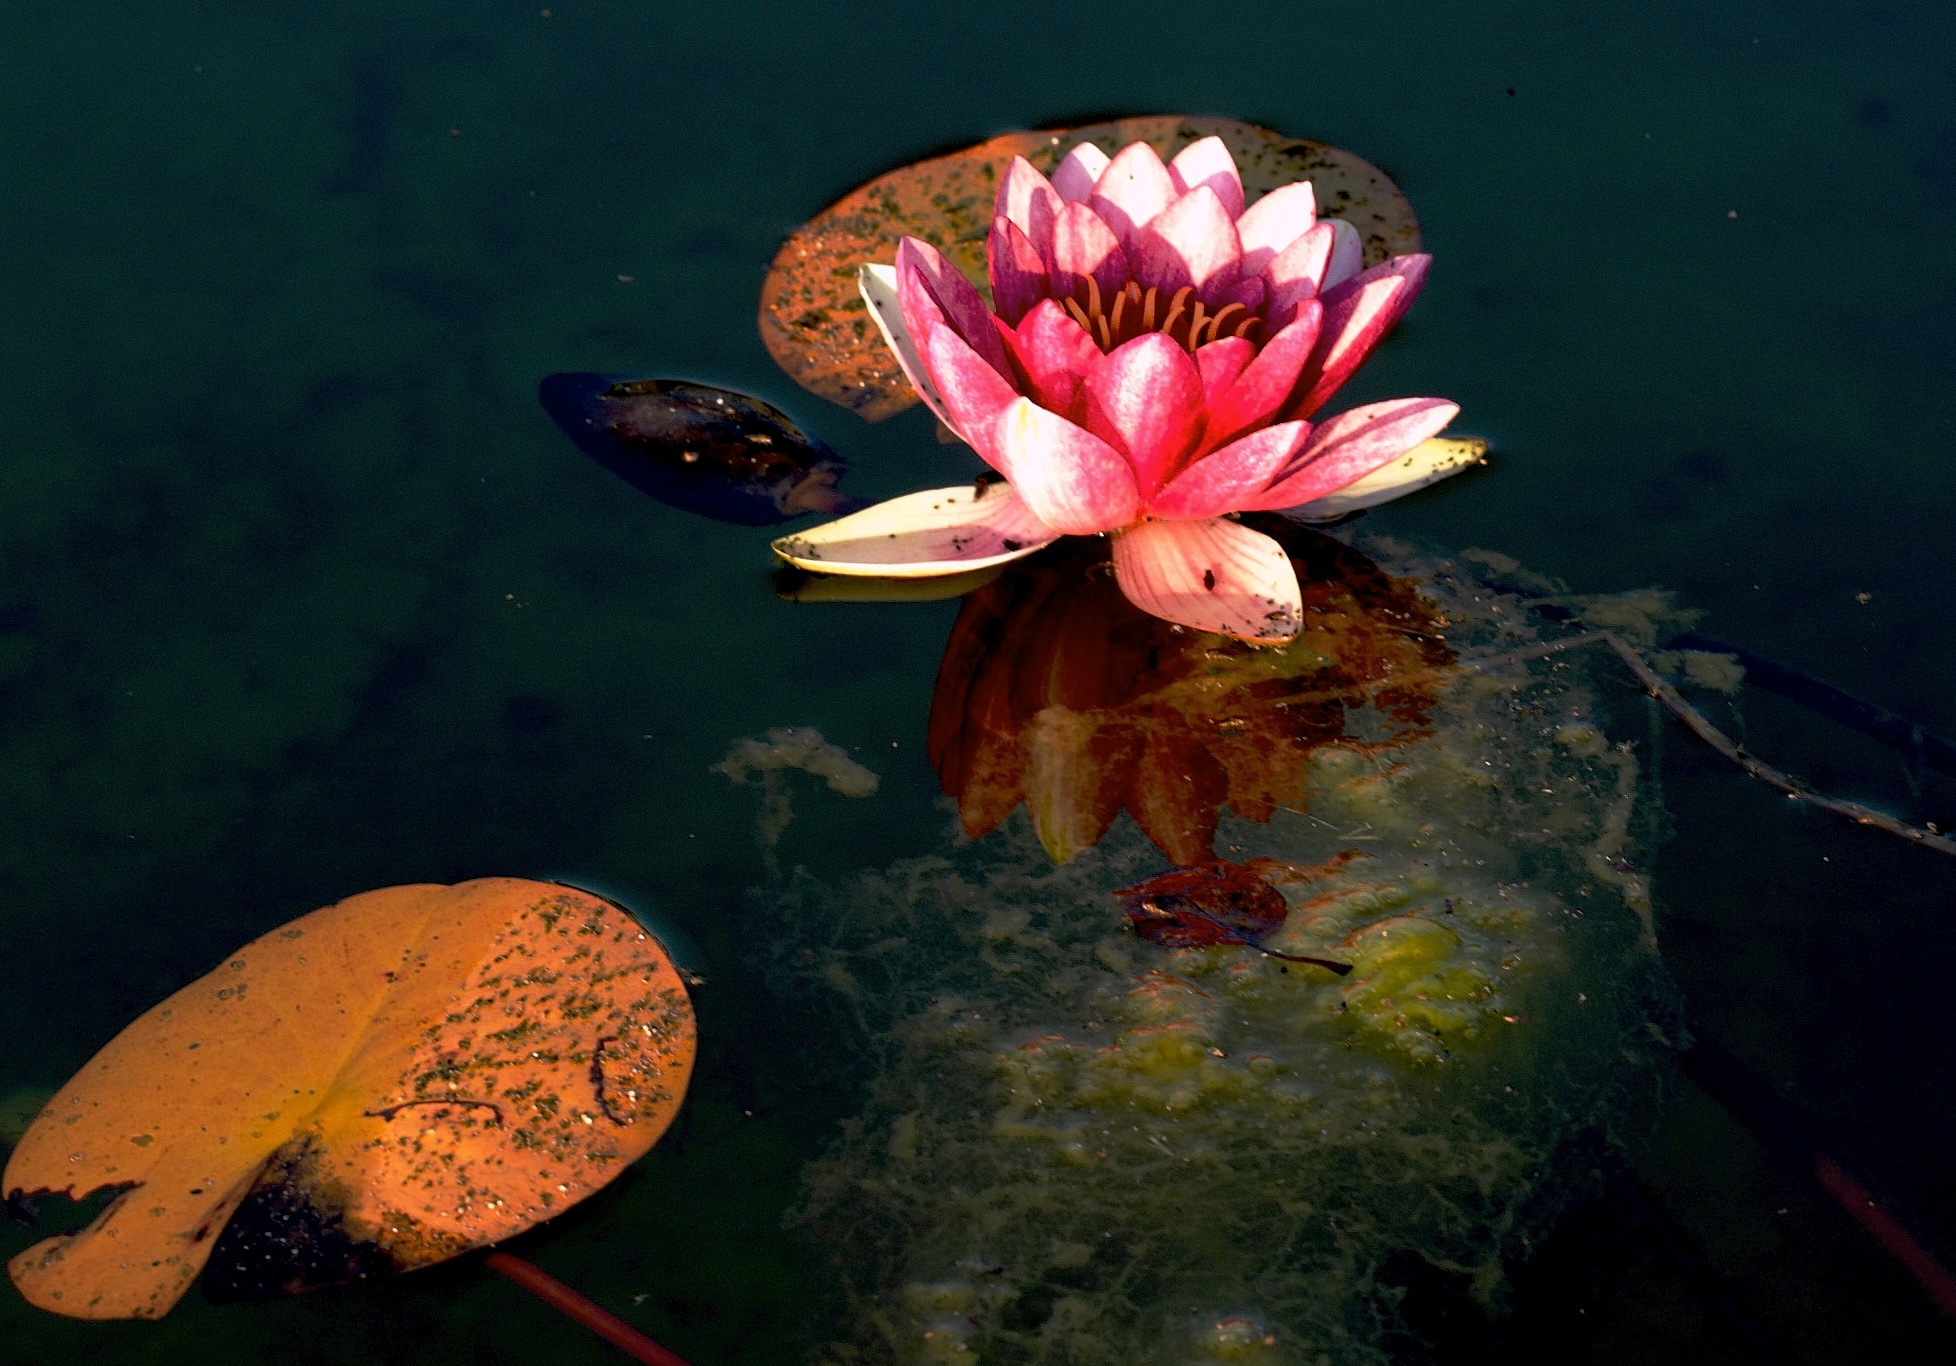 waterlily reflection view larger author soini han hannu